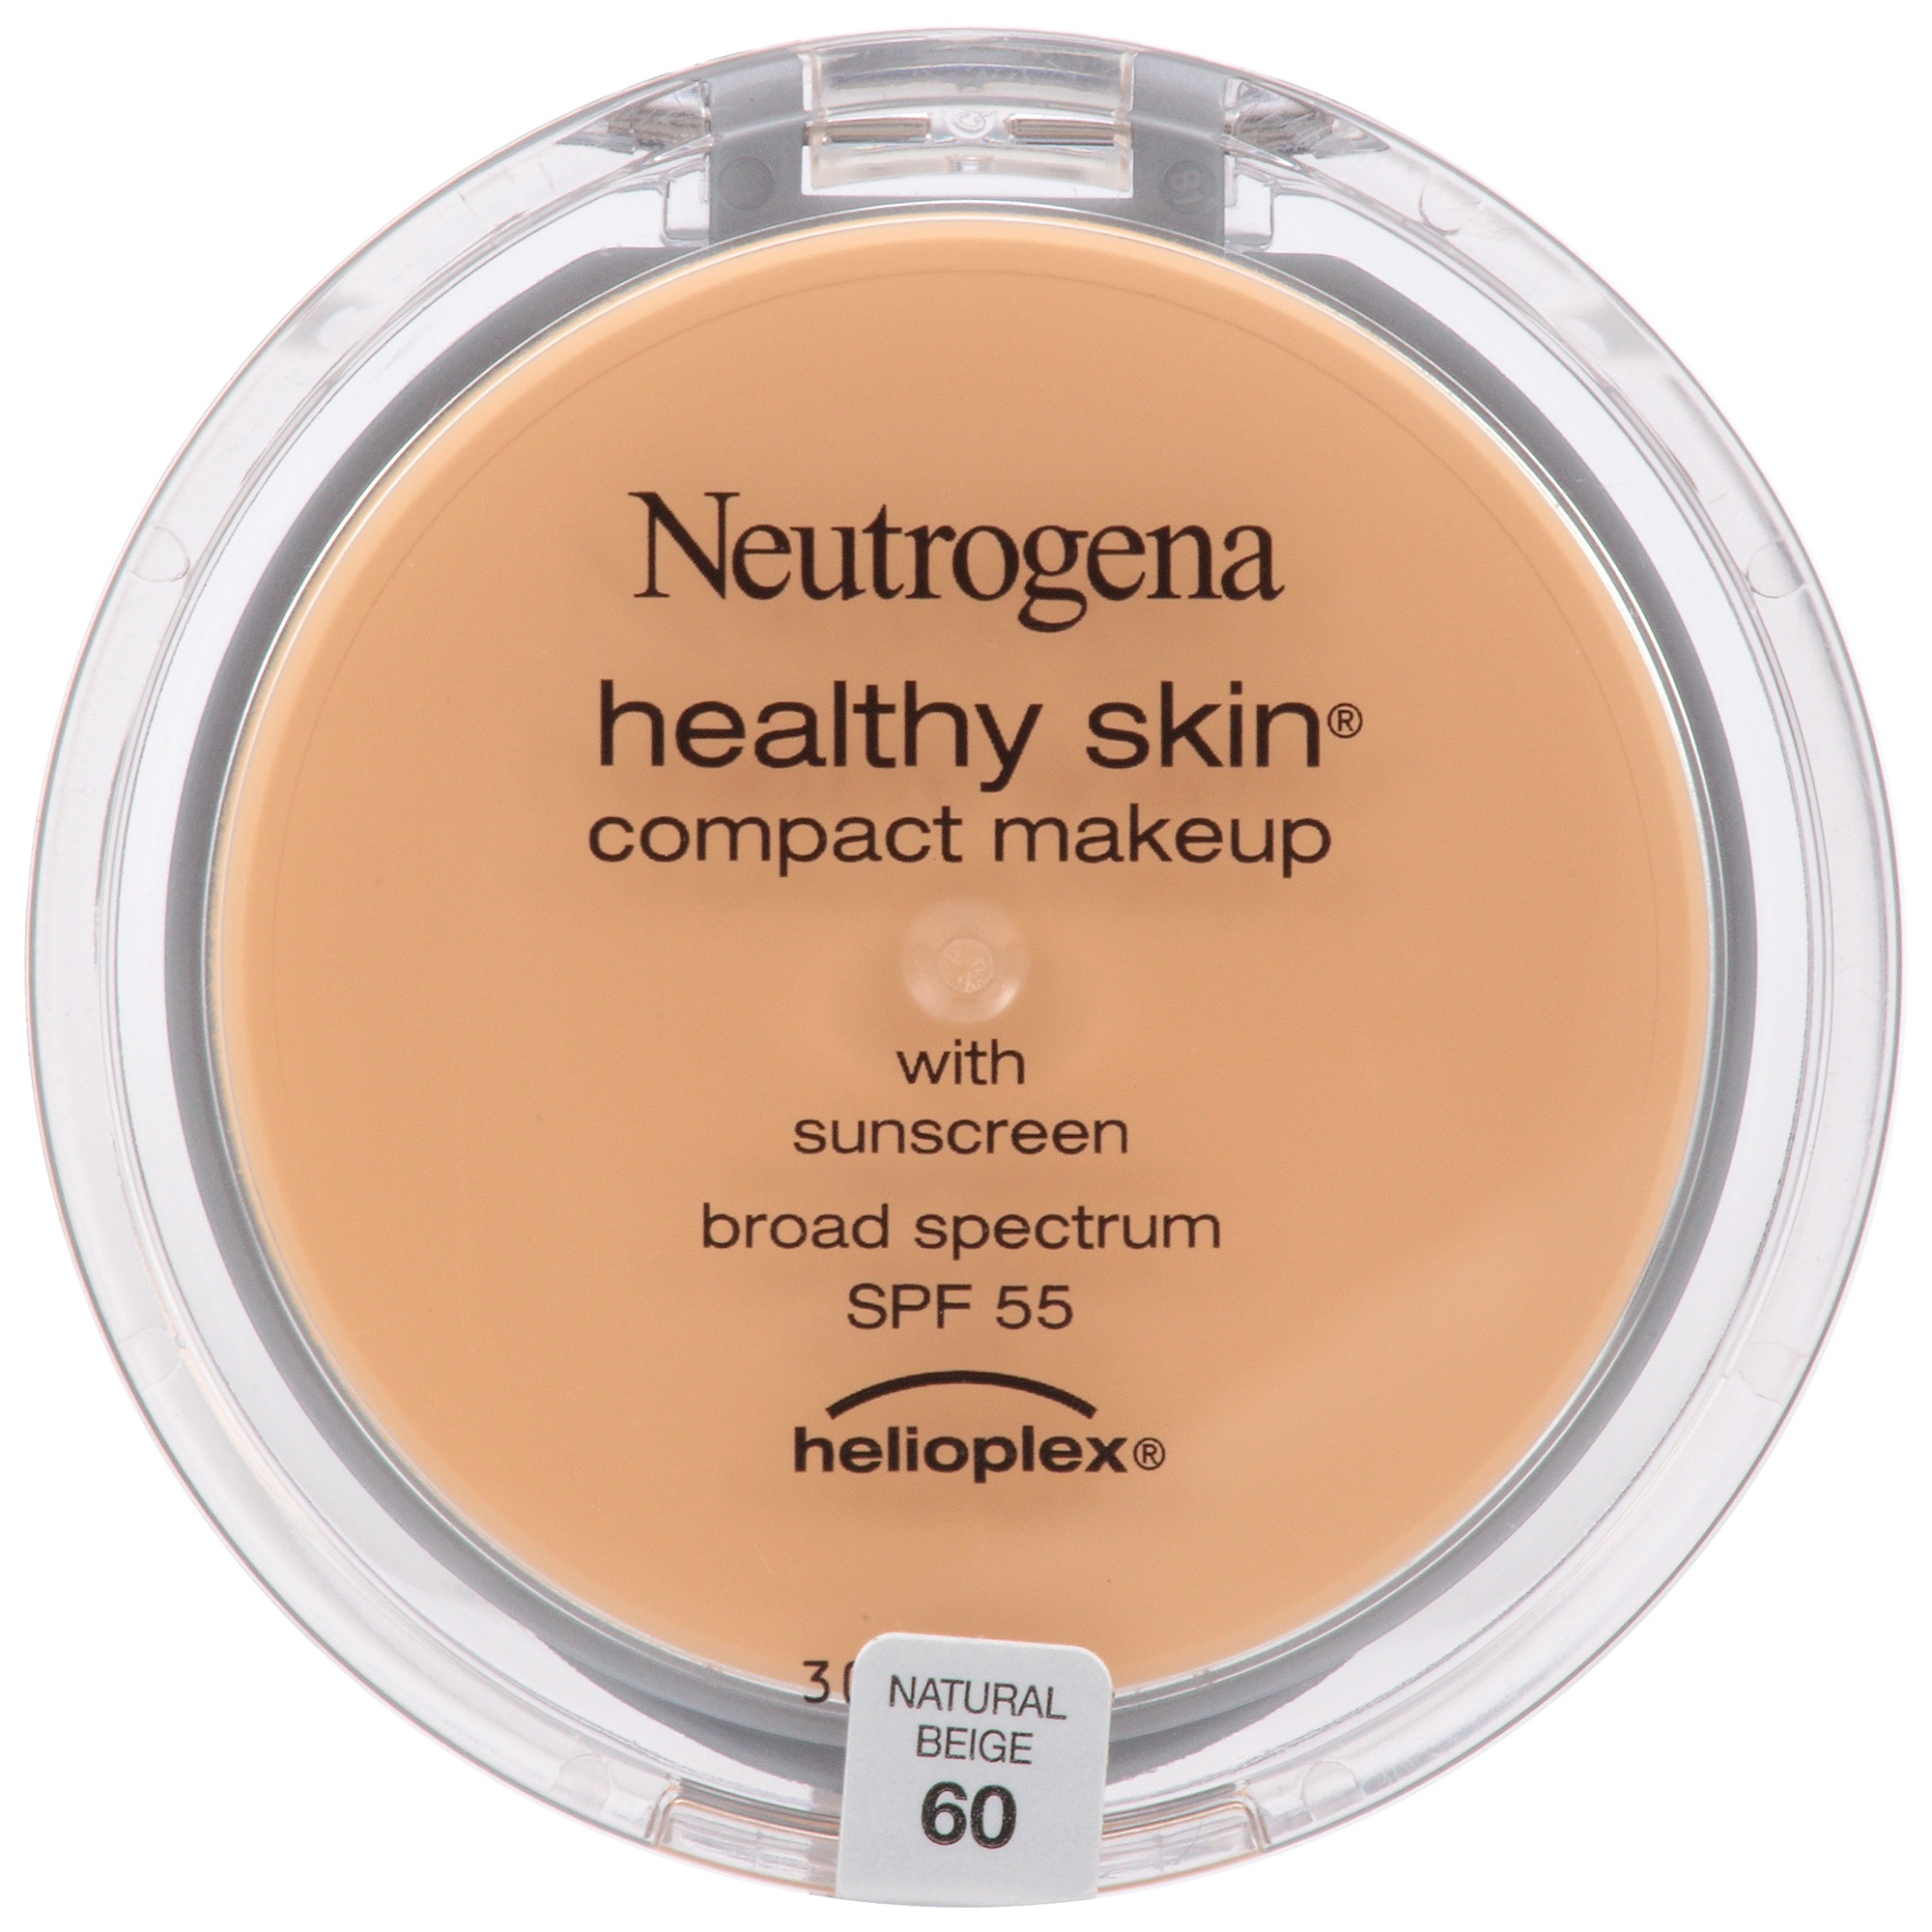 Neutrogena Healthy Skin Compact Makeup Broad Spectrum SPF 55, Natural Beige 60, .35 Oz